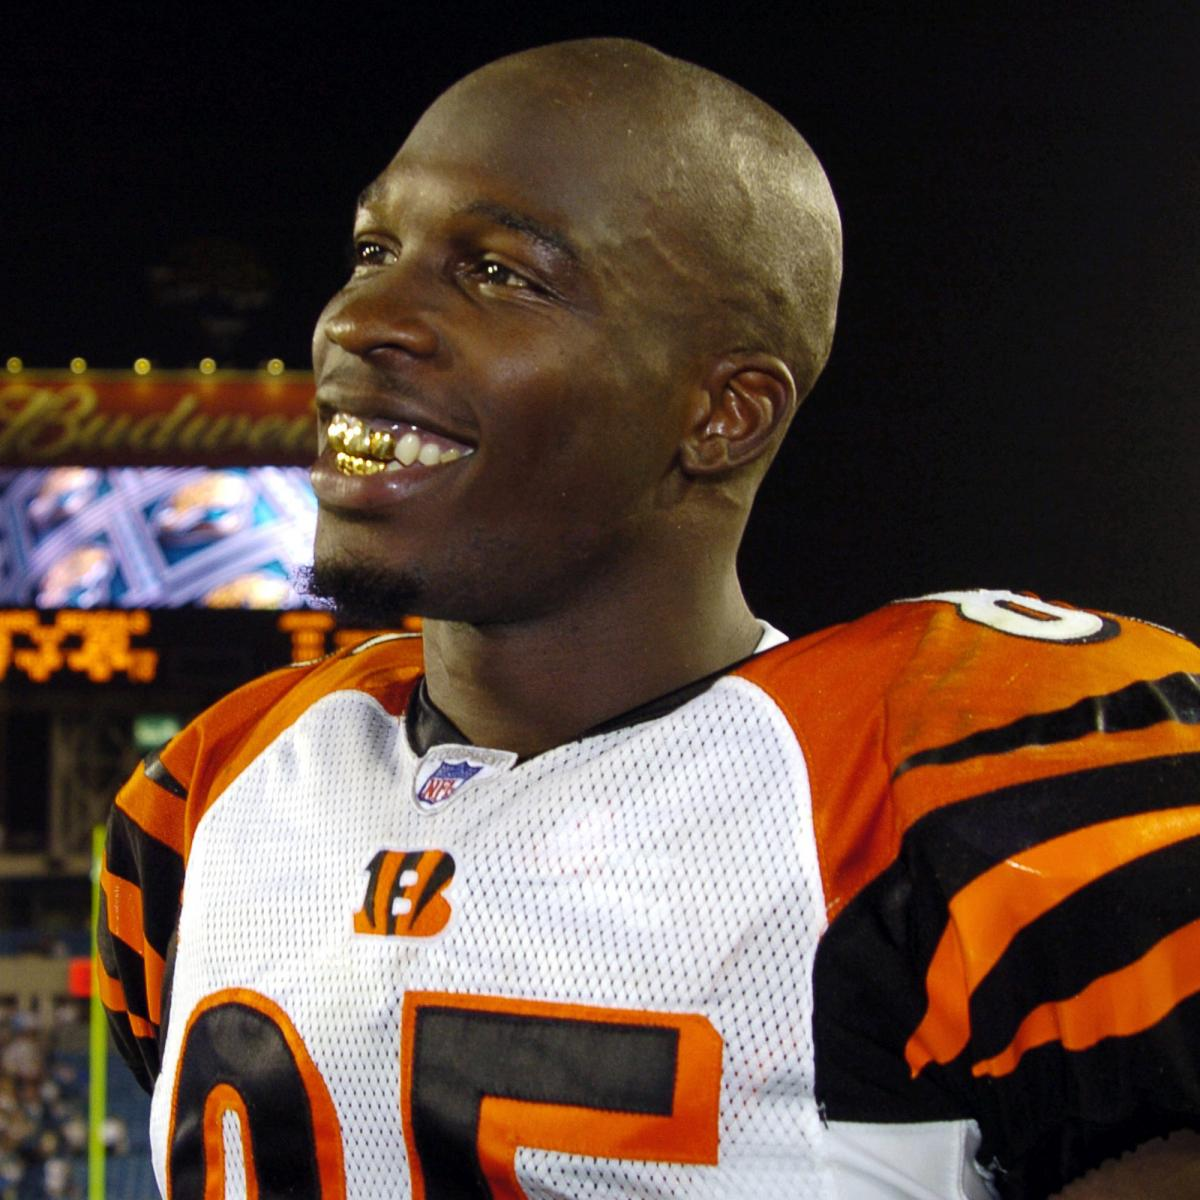 Chad Johnson Turns Into Cb To Go Head To Head With Antonio